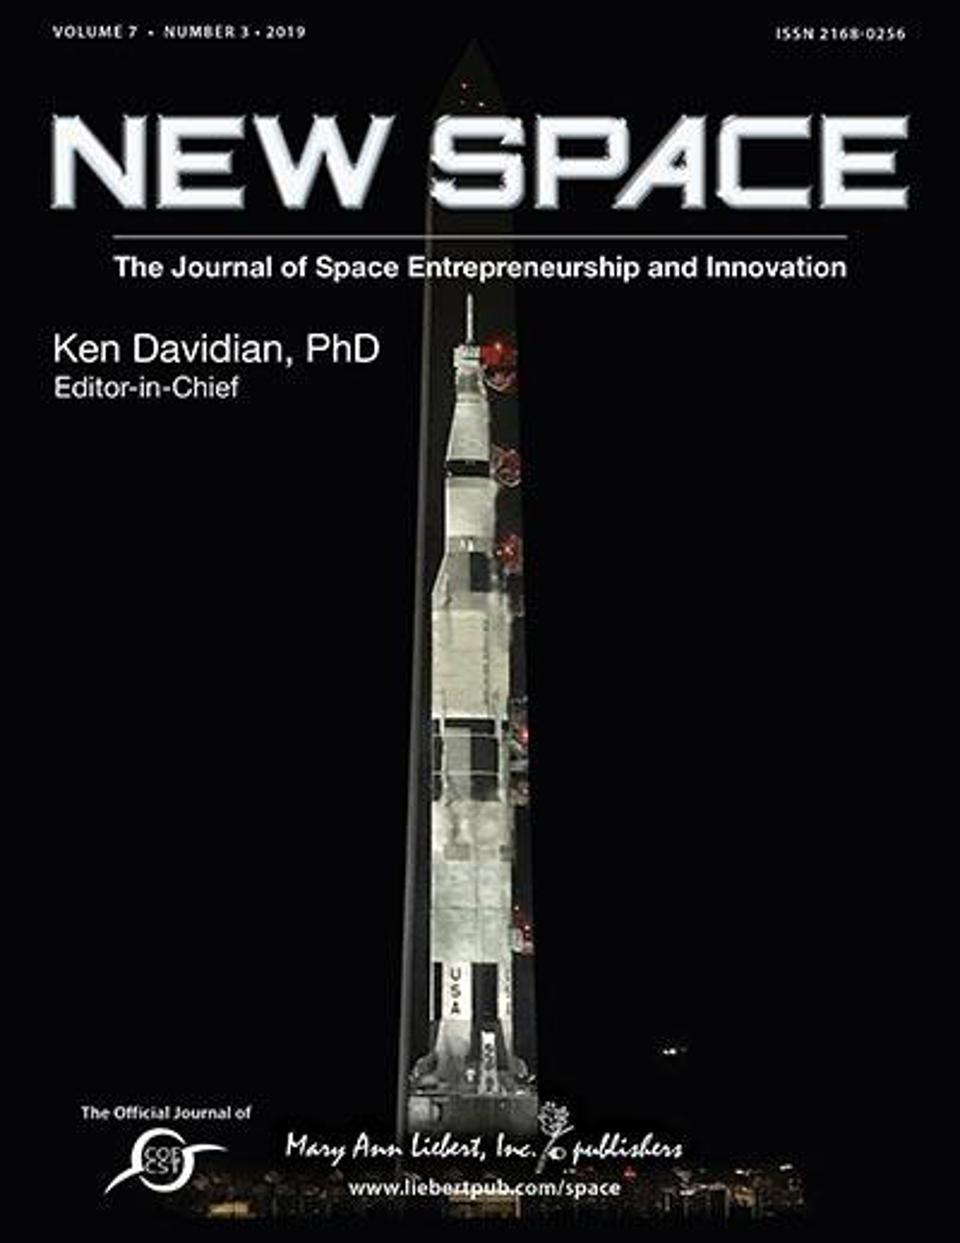 New Space is the only international peer-reviewed journal dedicated to academic, industry, and government contributions to space entrepreneurship and innovation.